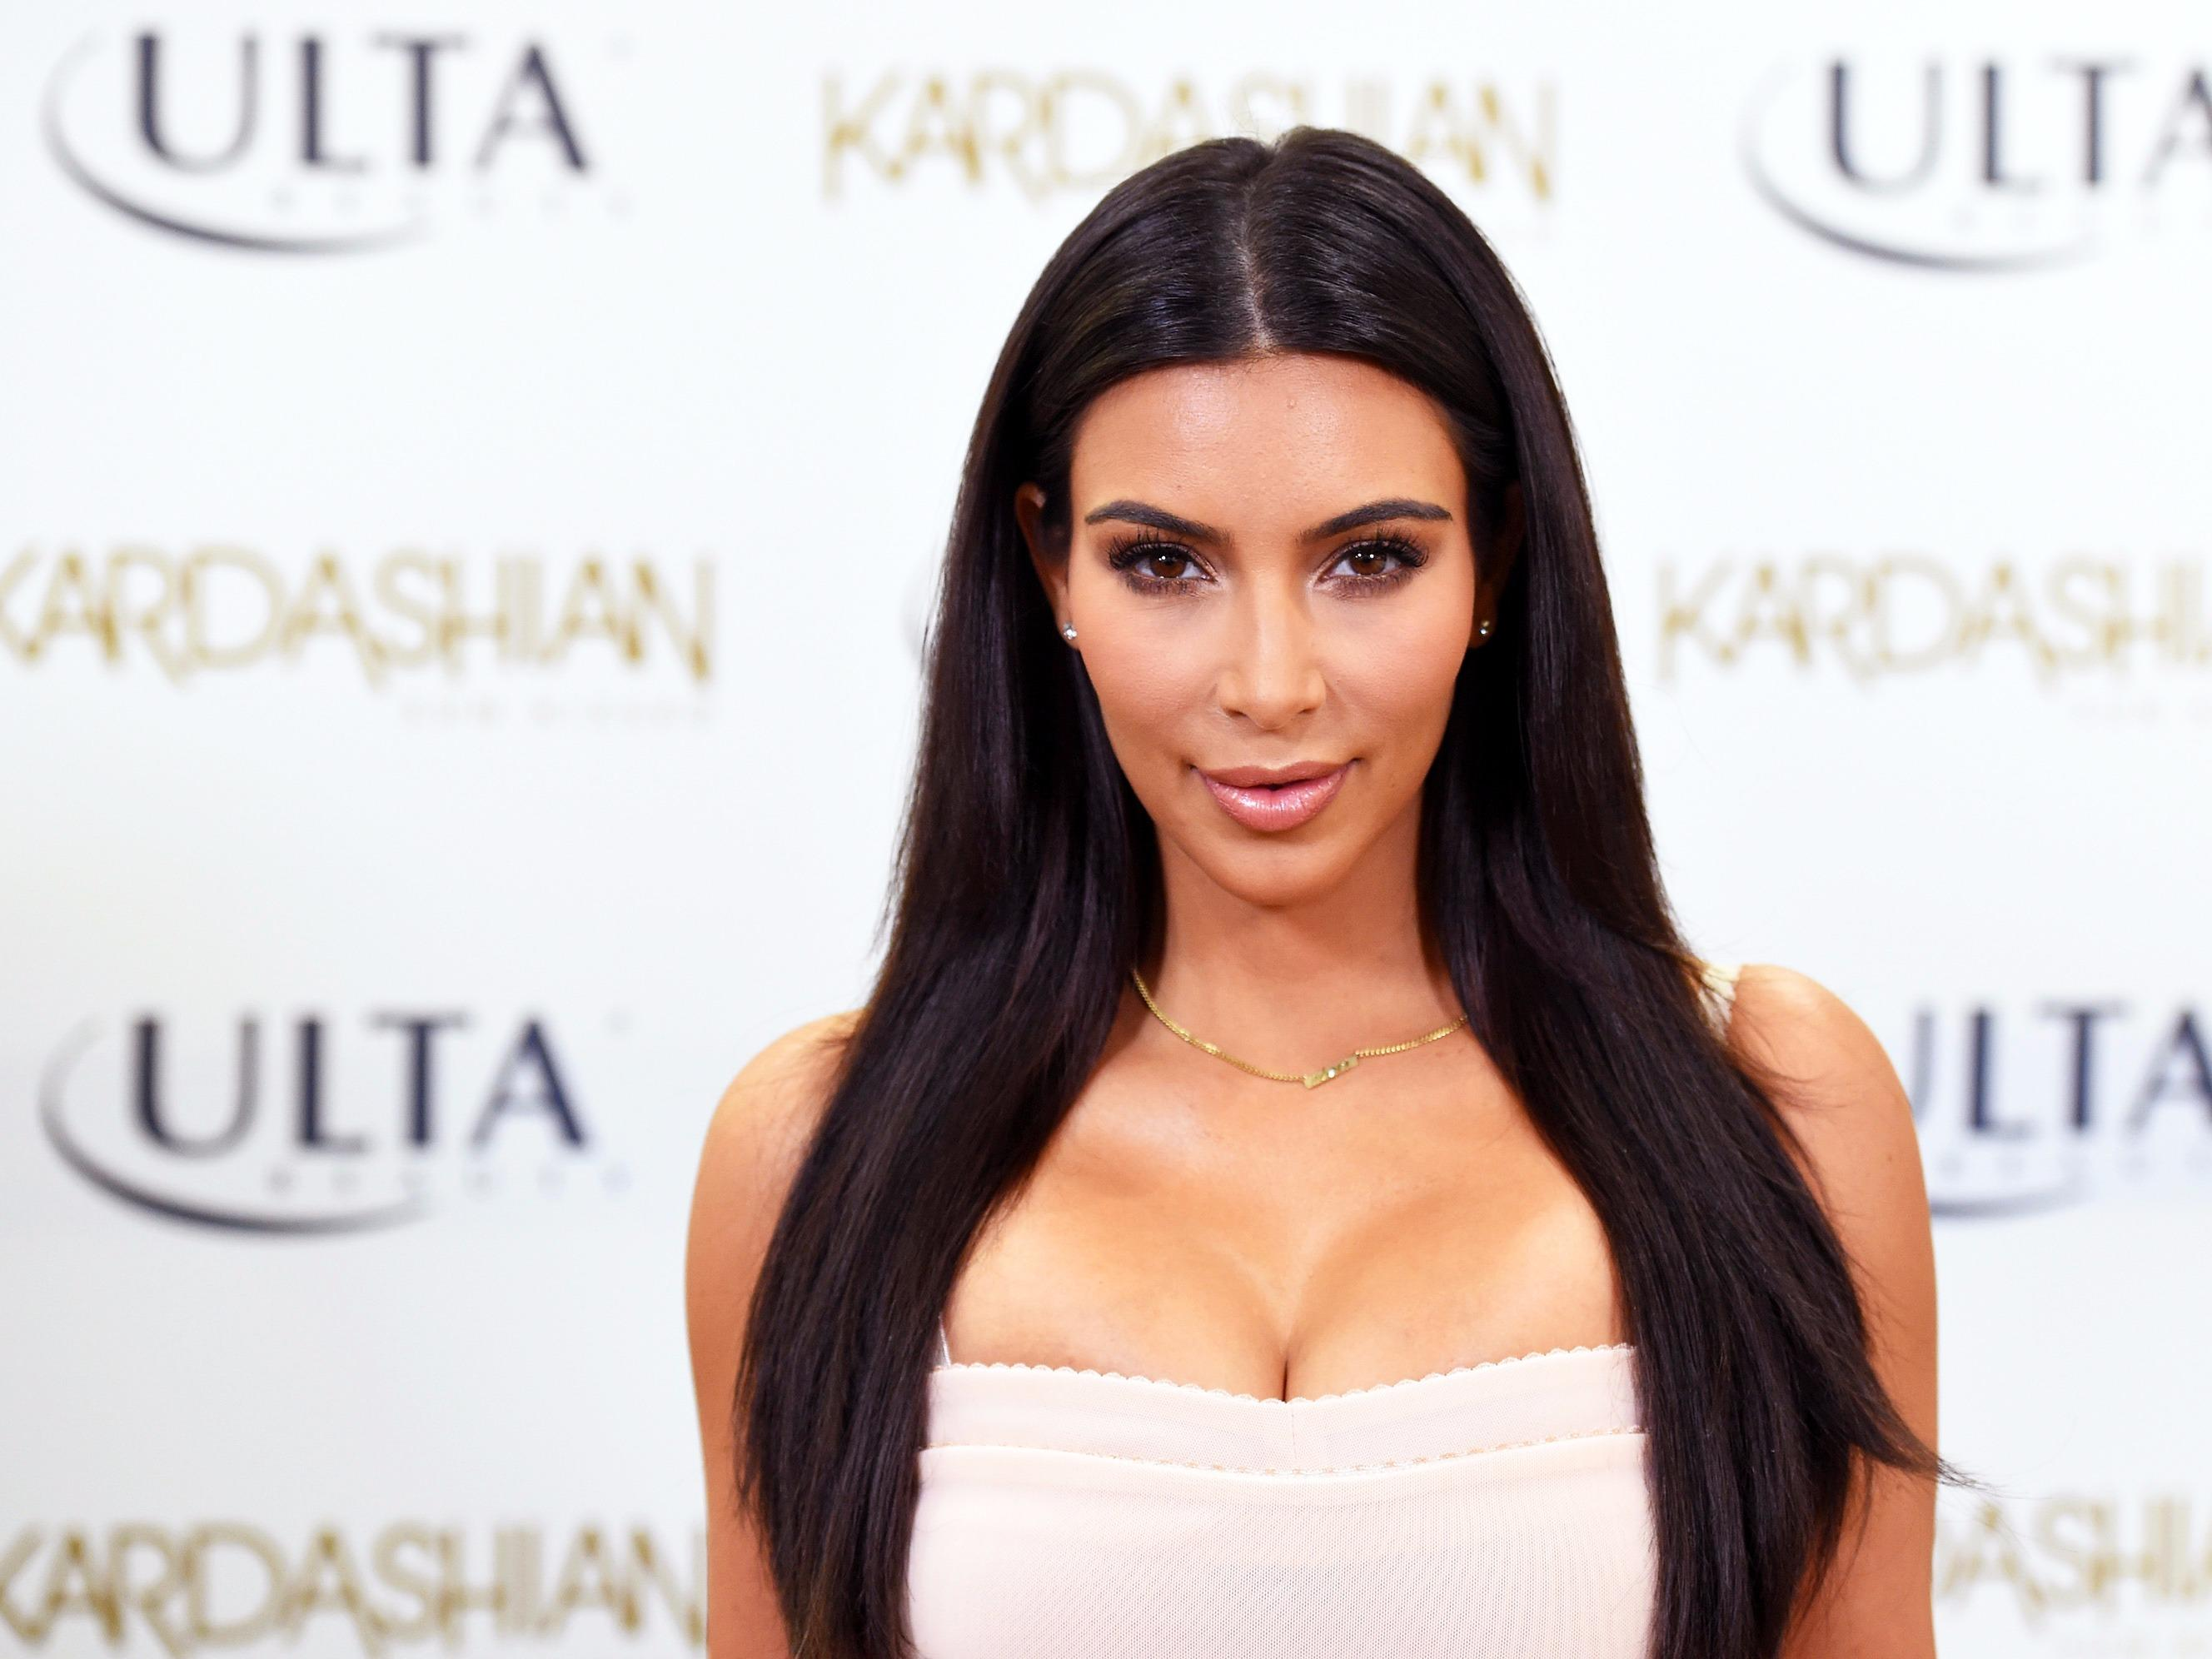 Kim Kardashian corrected that viral Instagram post promoting a drug after the FDA took it down